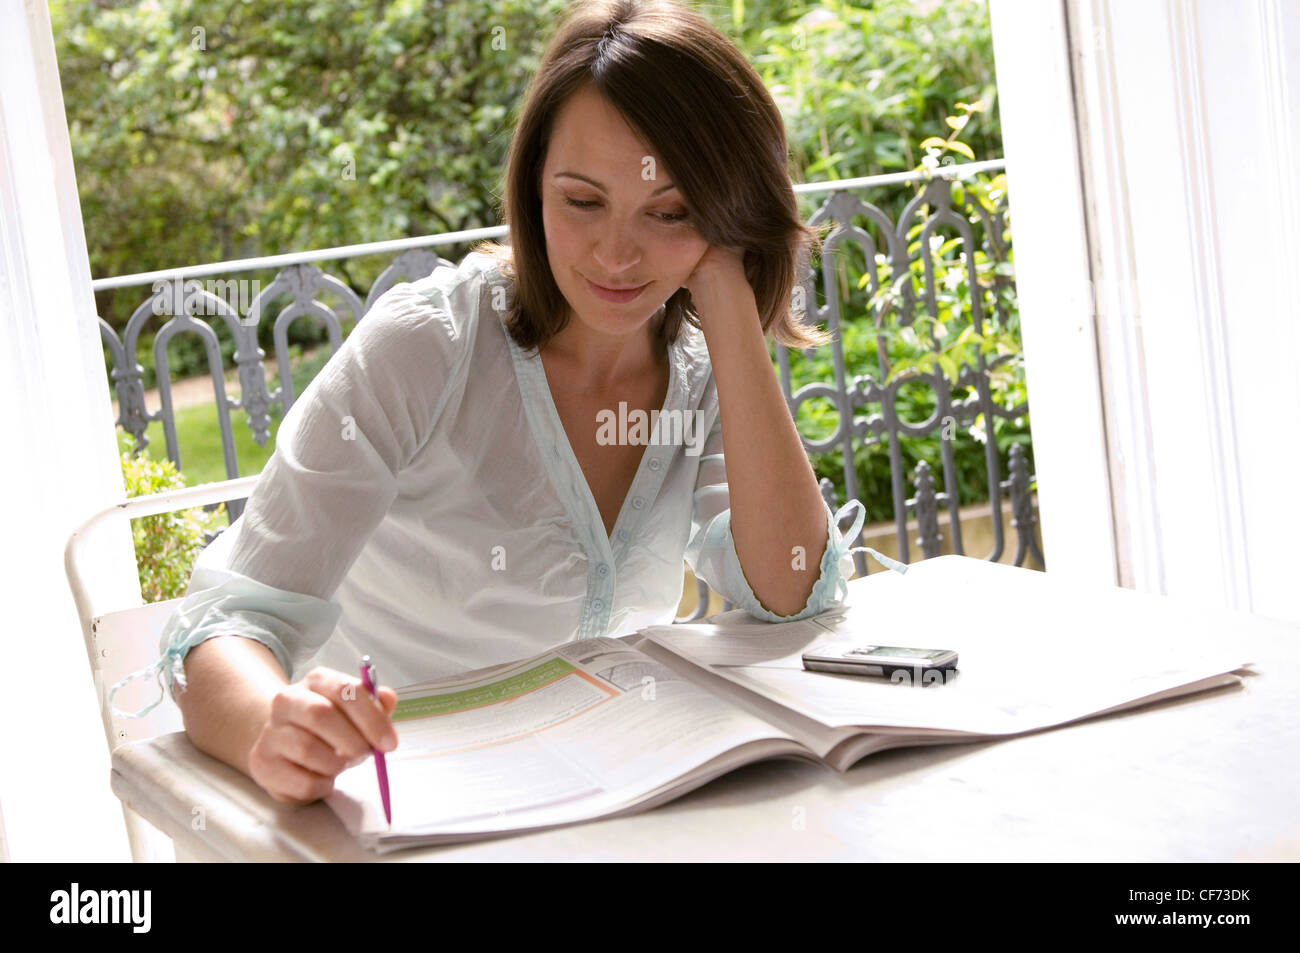 Female sitting at a table, job hunting in a newspaper - Stock Image